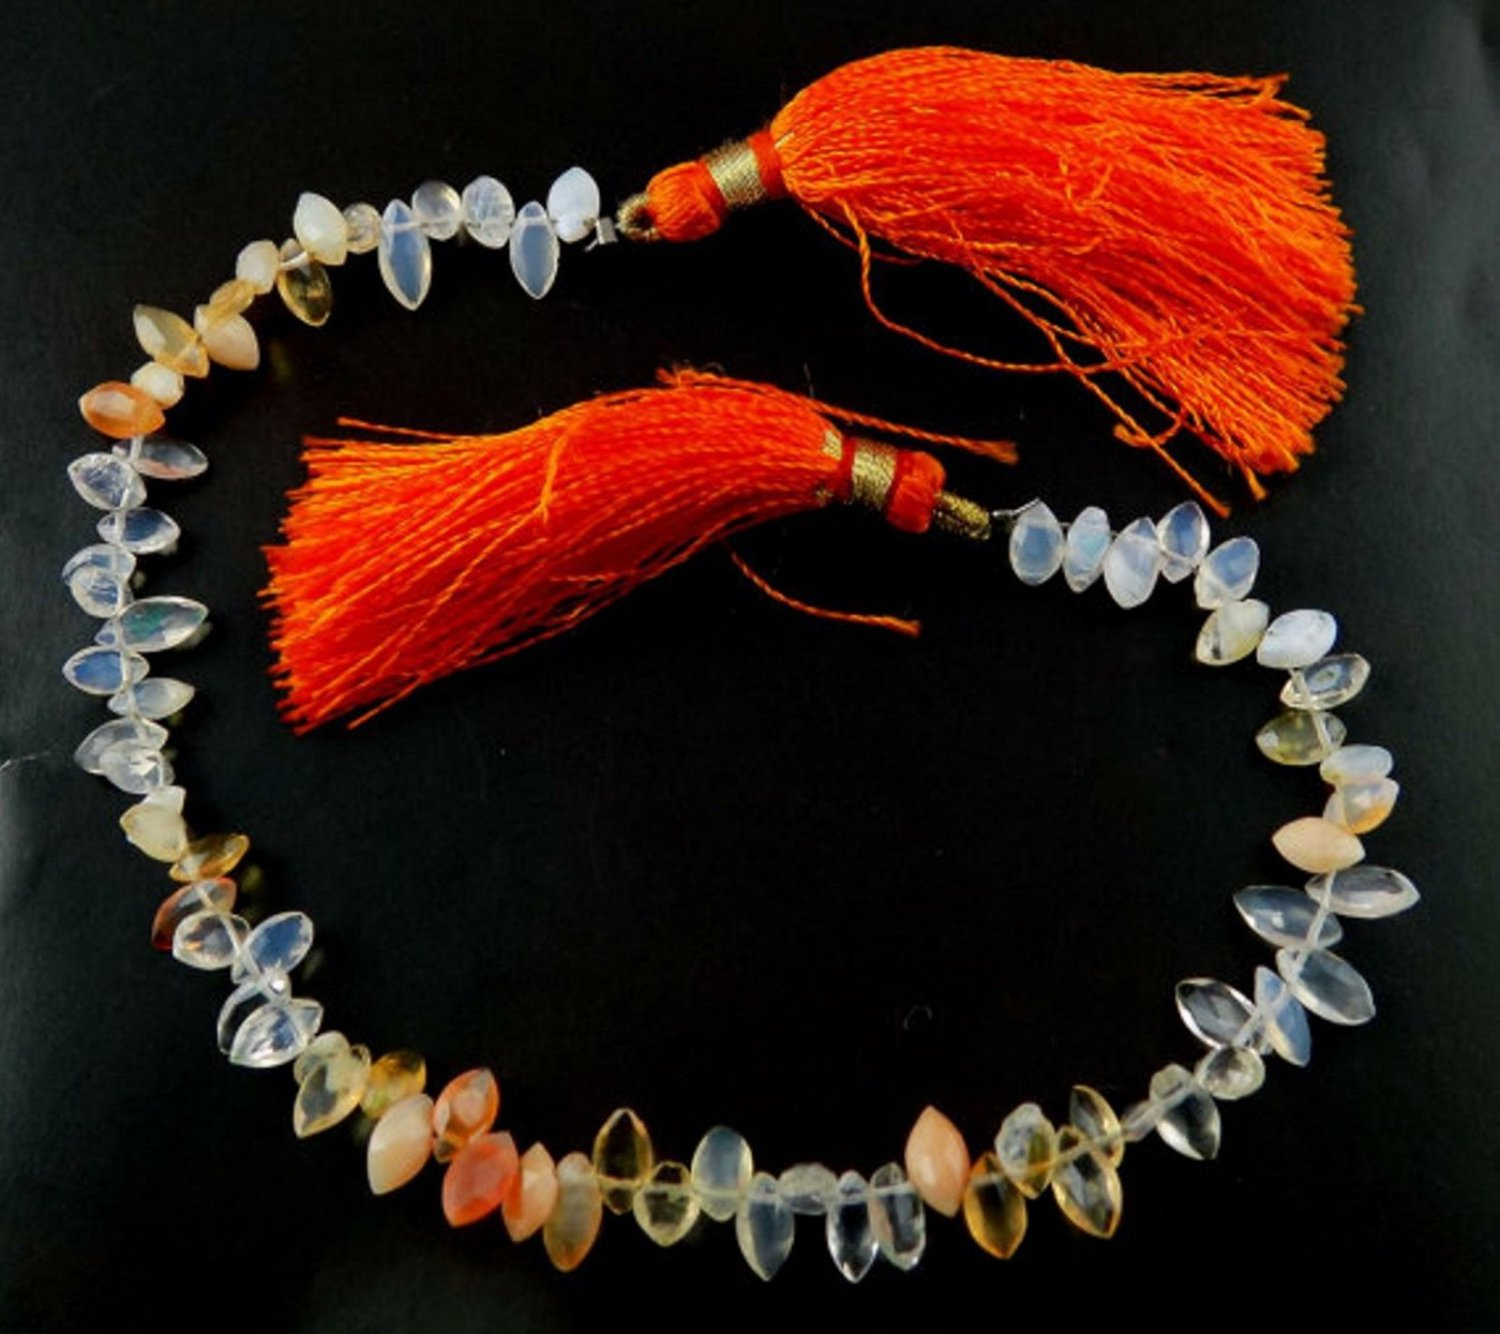 "1 Strand Natural Fire Opal Briolette Marquise 3x5-4x8mm Faceted Stone 7.5"" Long"